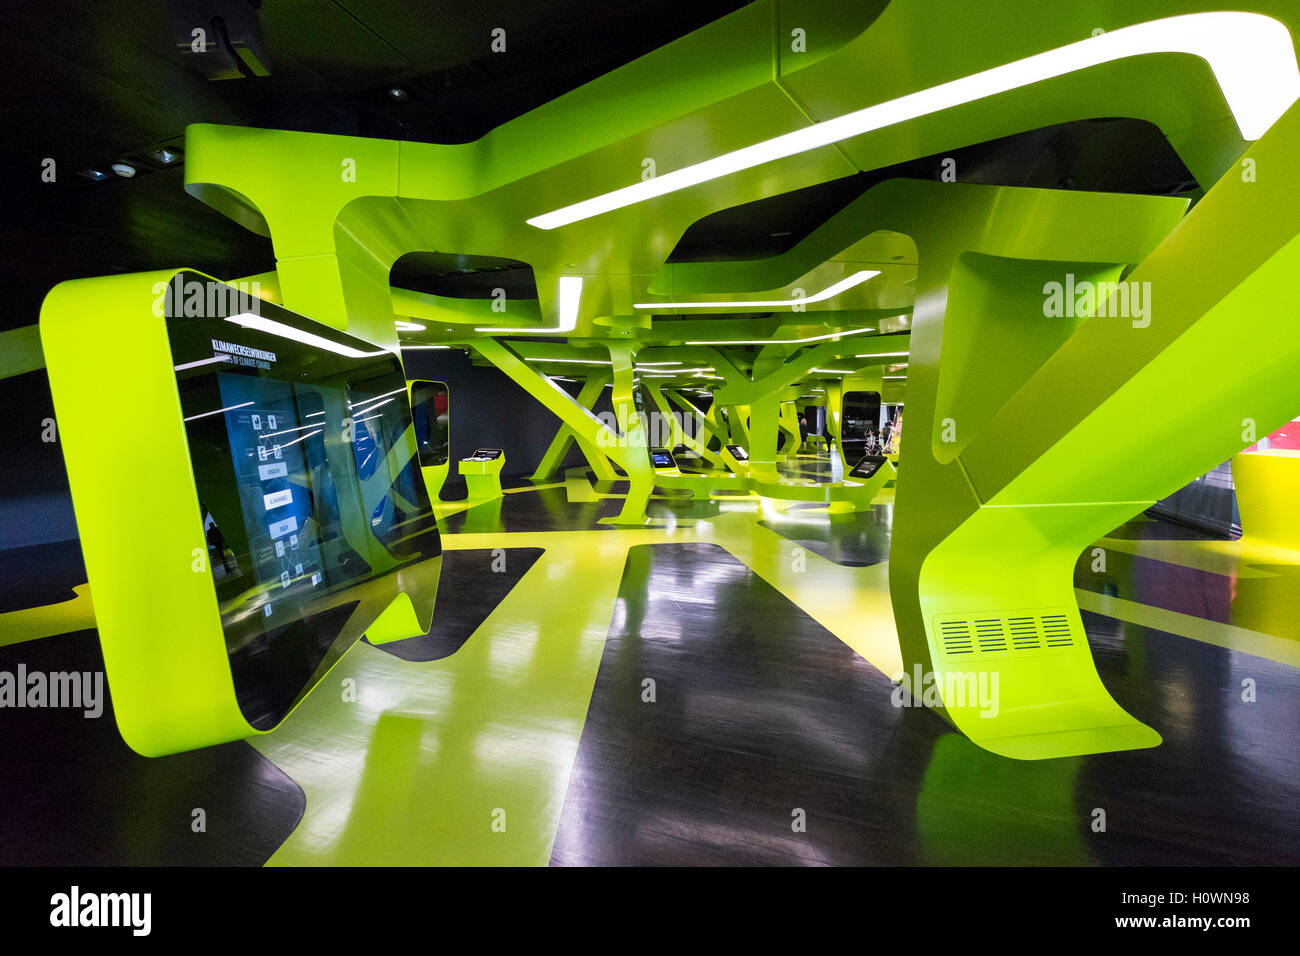 Interior of interactive visitors centre at VW Volkswagen Visitor Centre at Autostadt in Wolfsburg, Germany - Stock Image